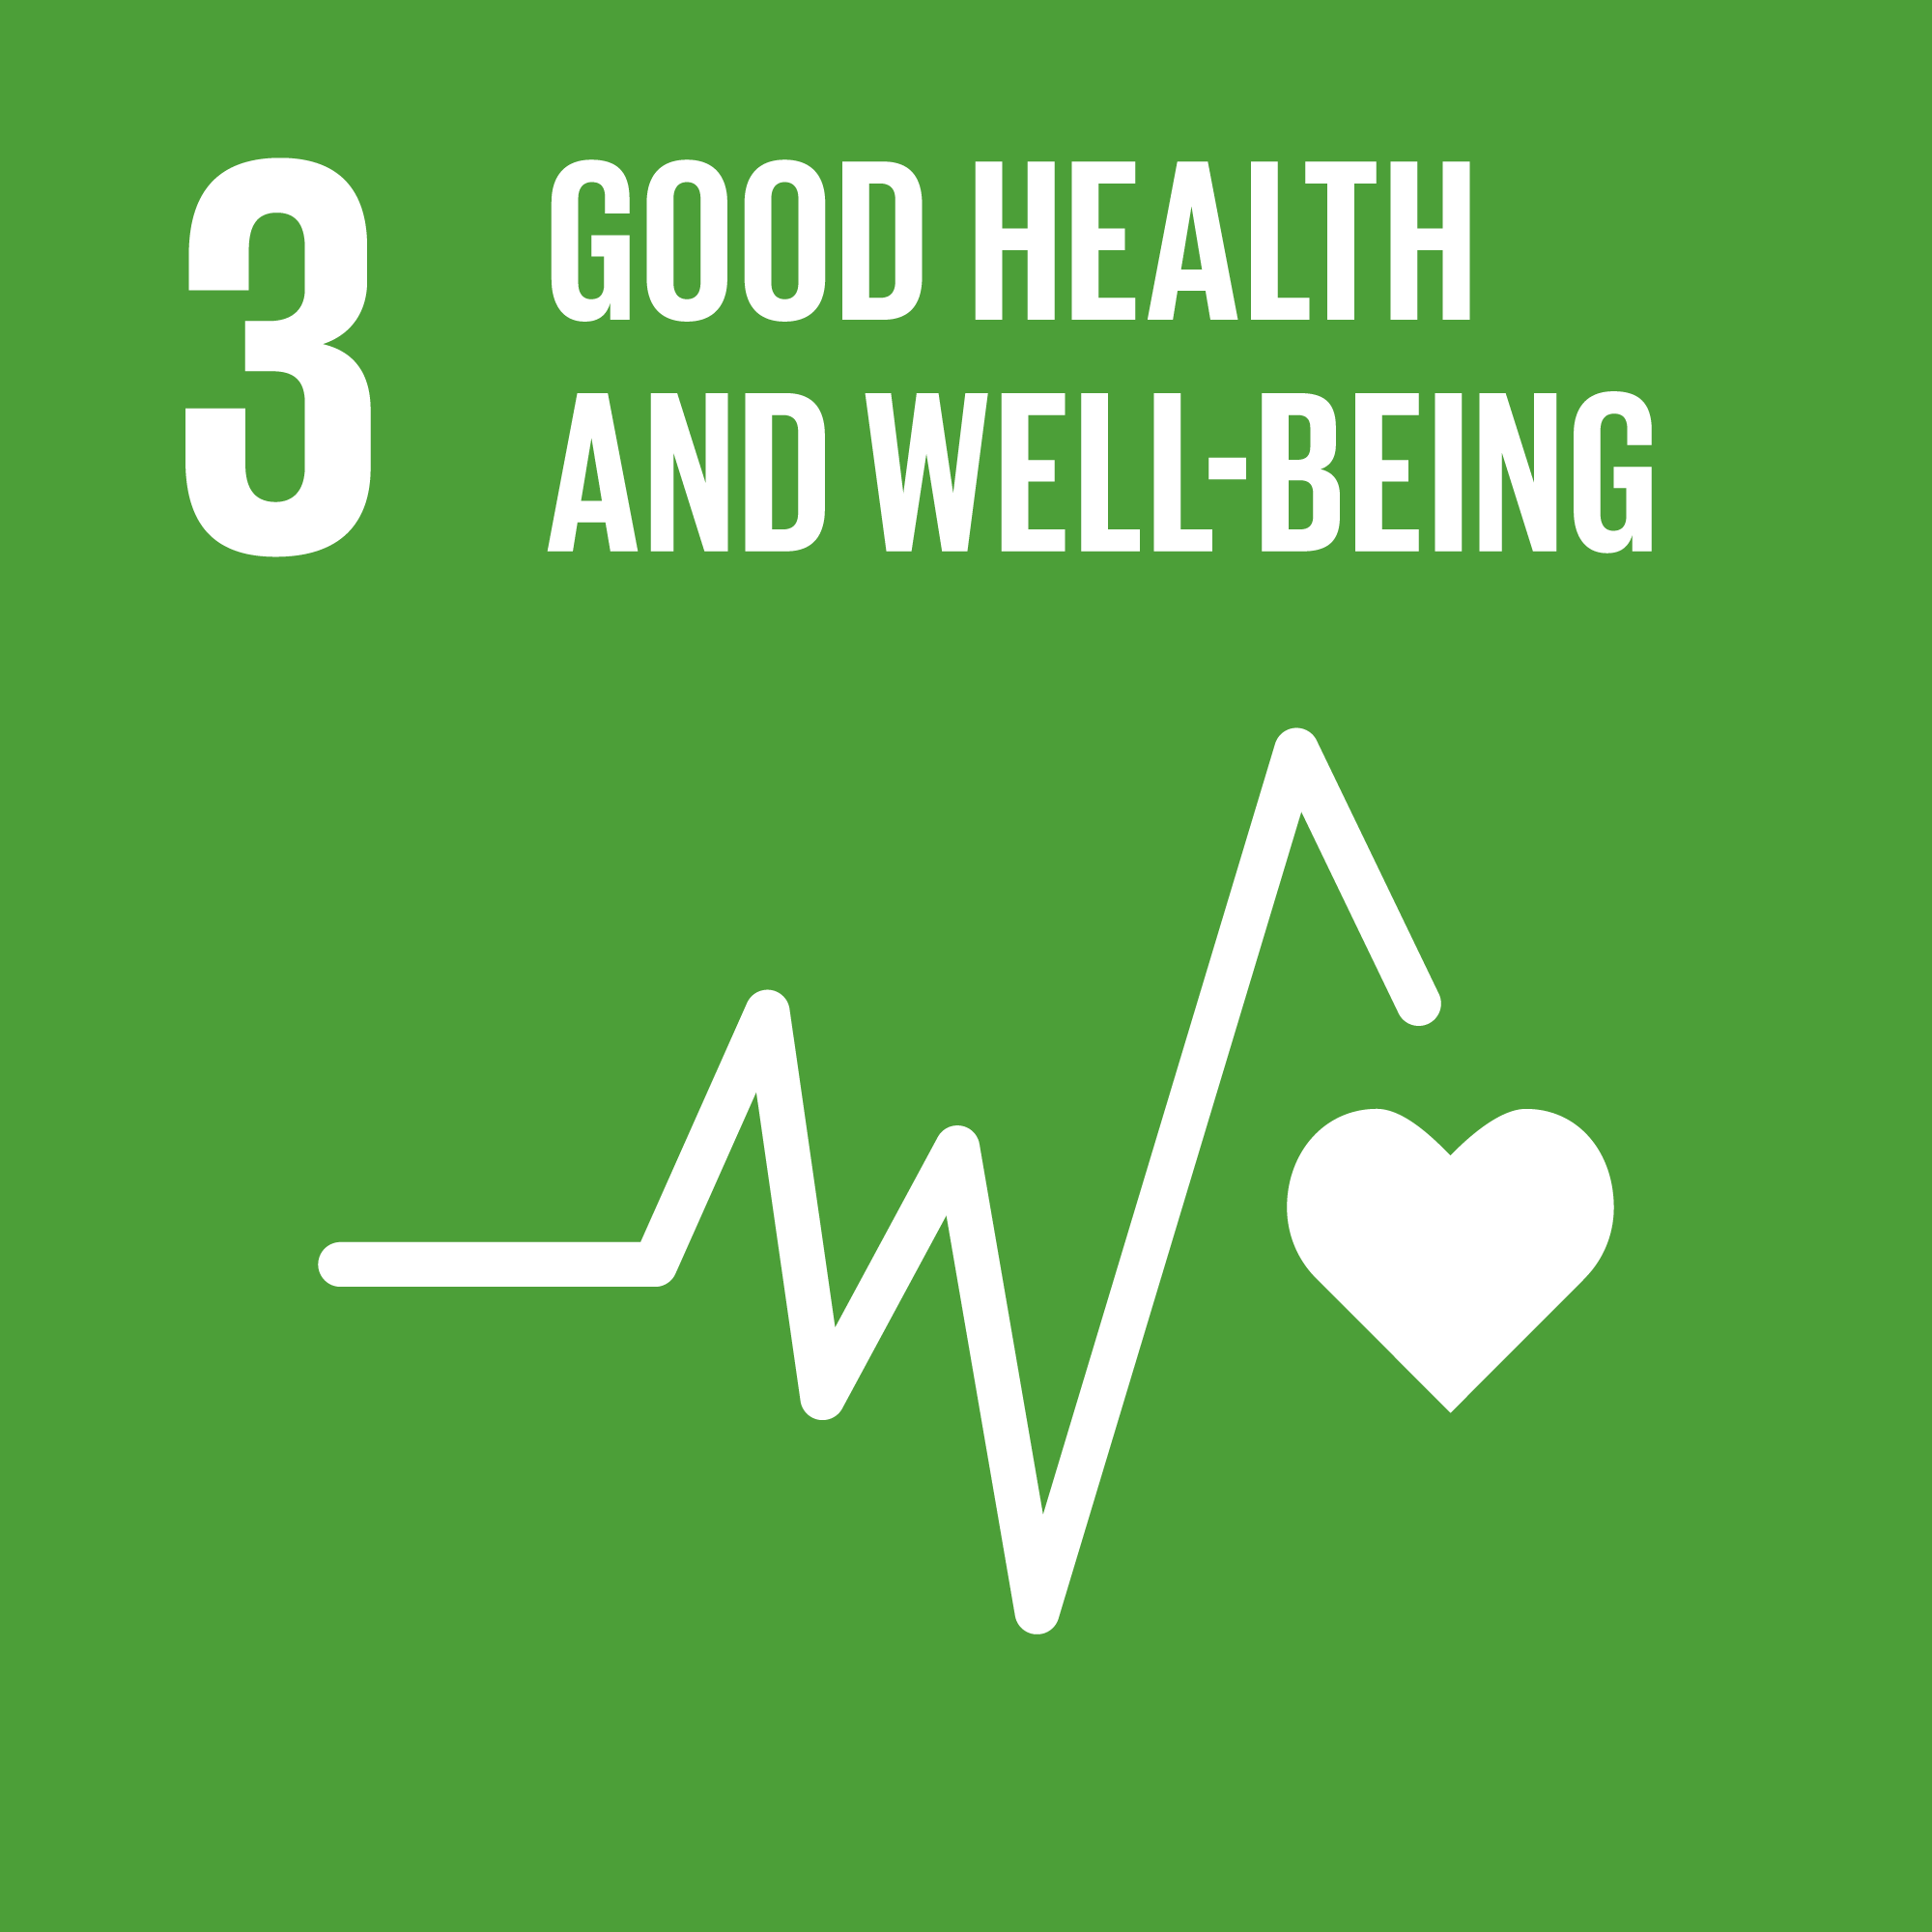 Goal 3. Ensure healthy lives and promote well-being for all at all ages    13 Targets    27 Indicators